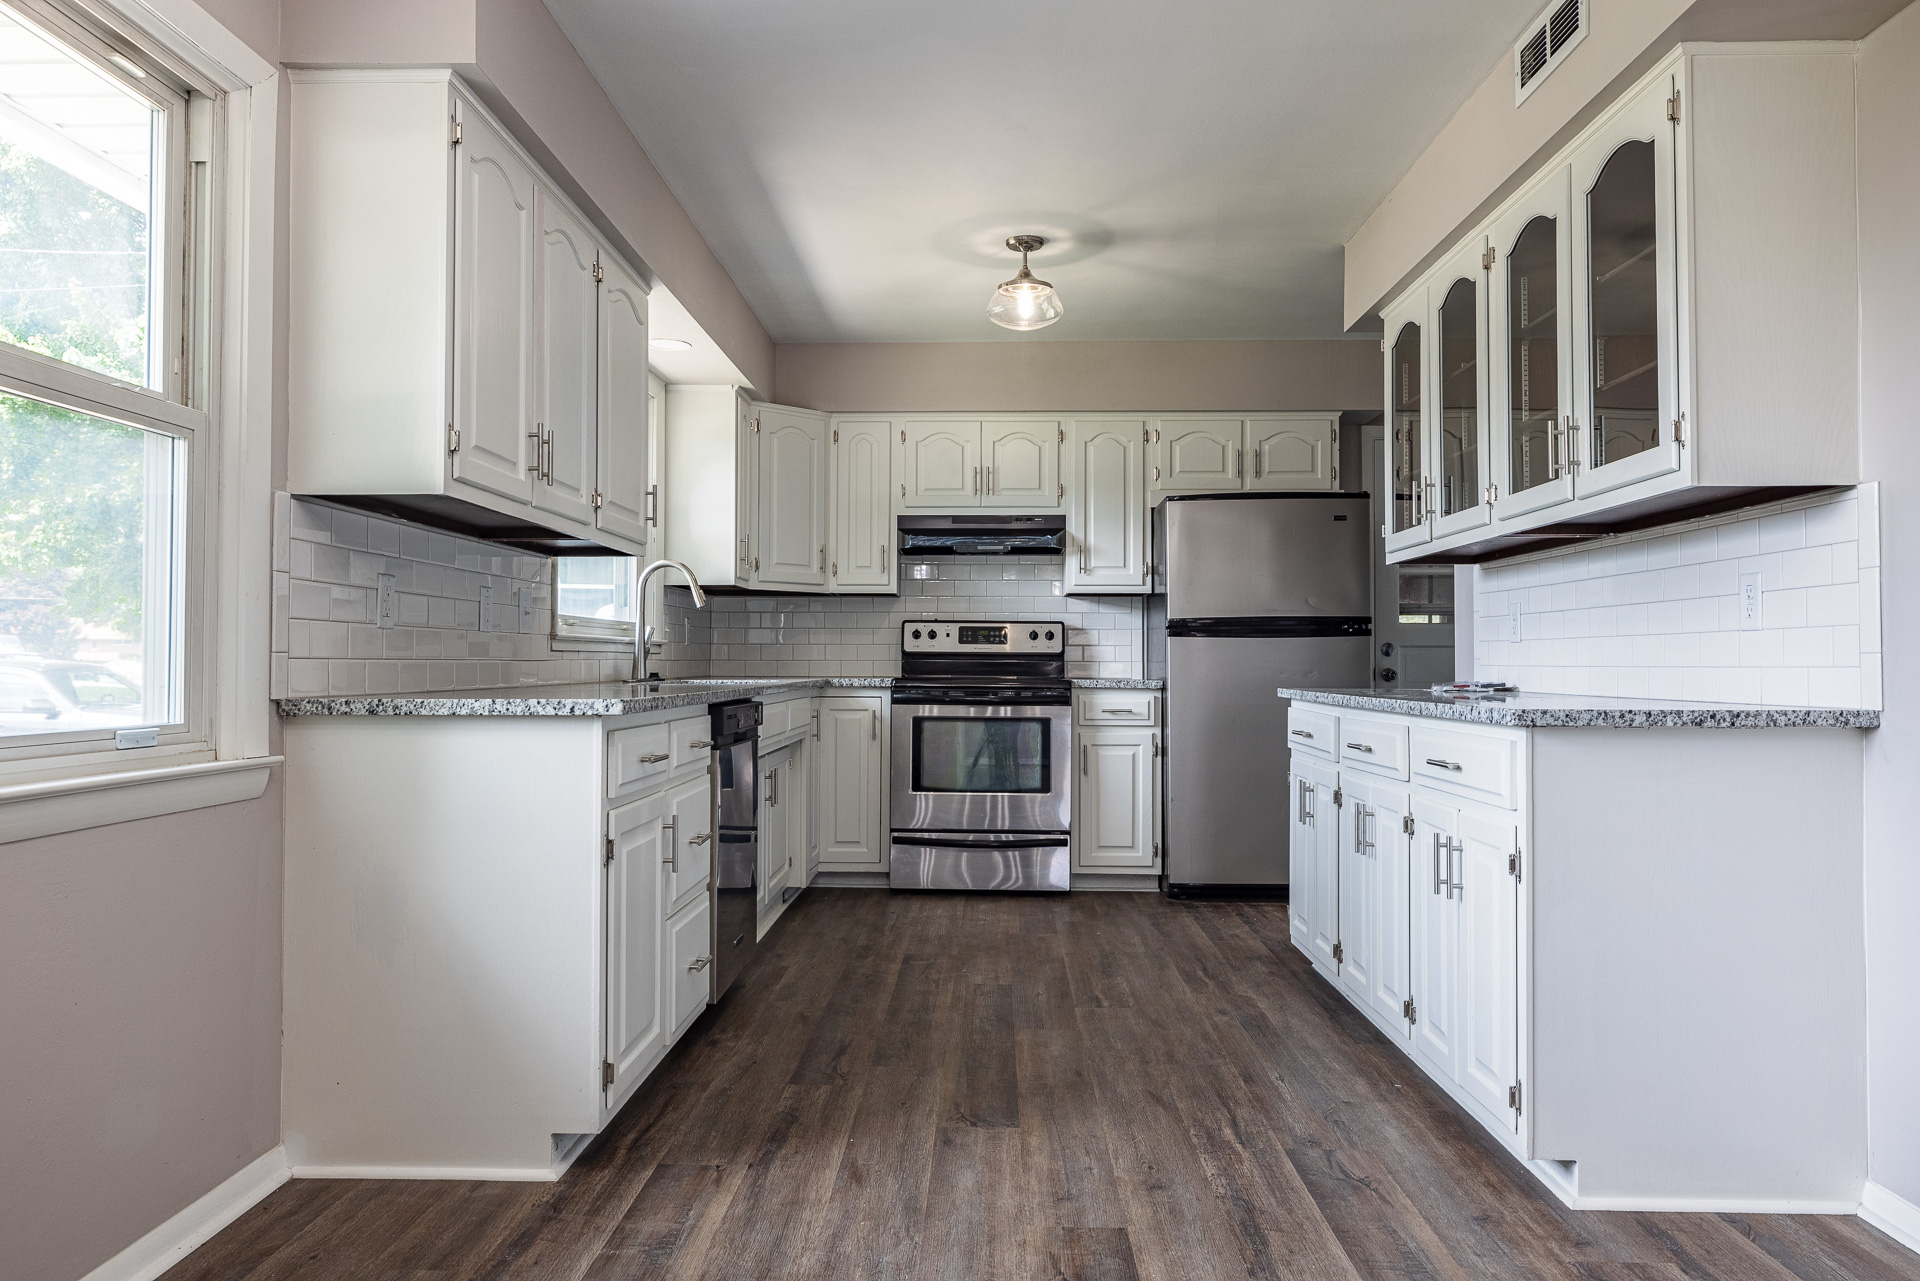 Real Estate photo of black and white kitchen.